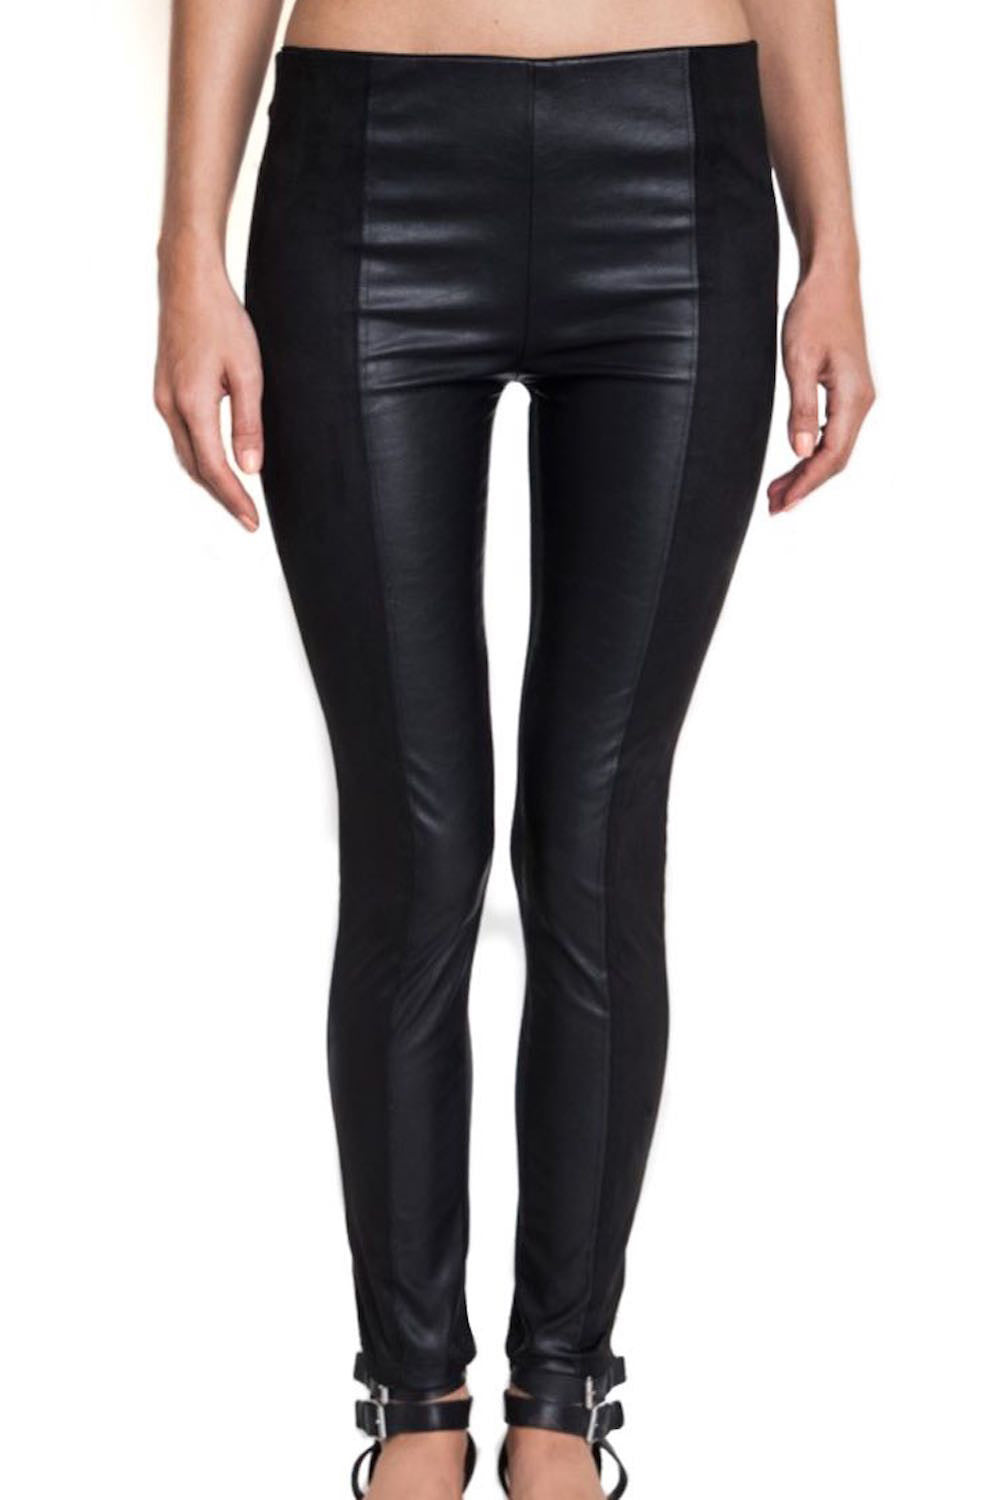 242796b8c090d Black Faux Leather and Suede Front Panel Leggings - South of Society